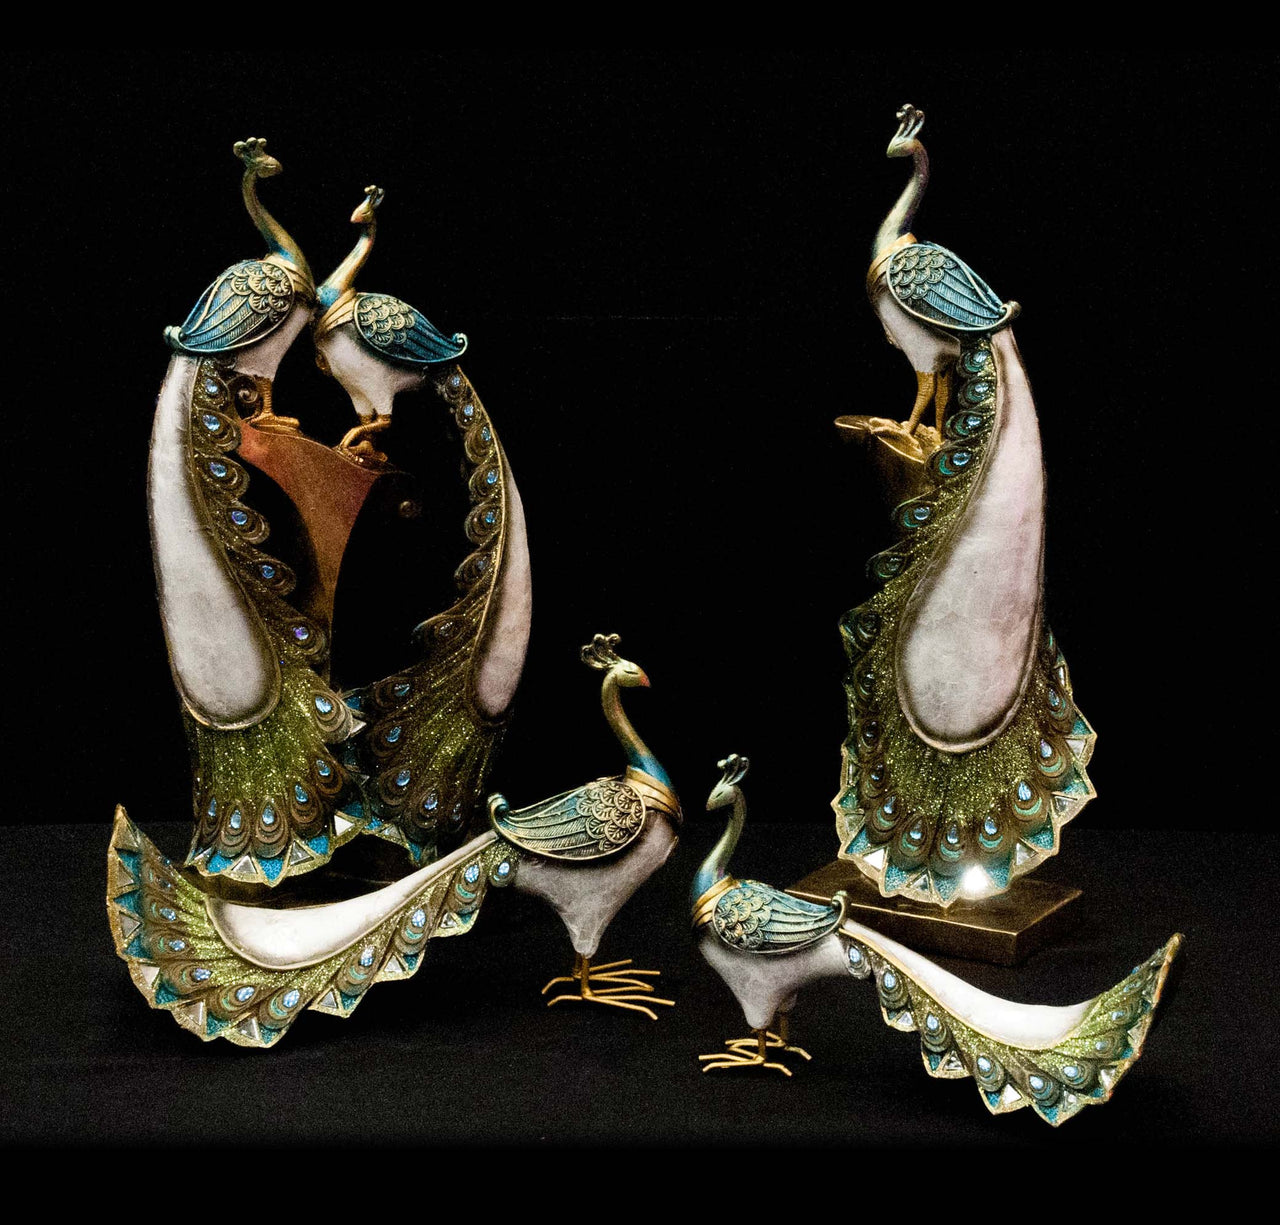 HCHD5207 - Double Standing Pearl Peacocks